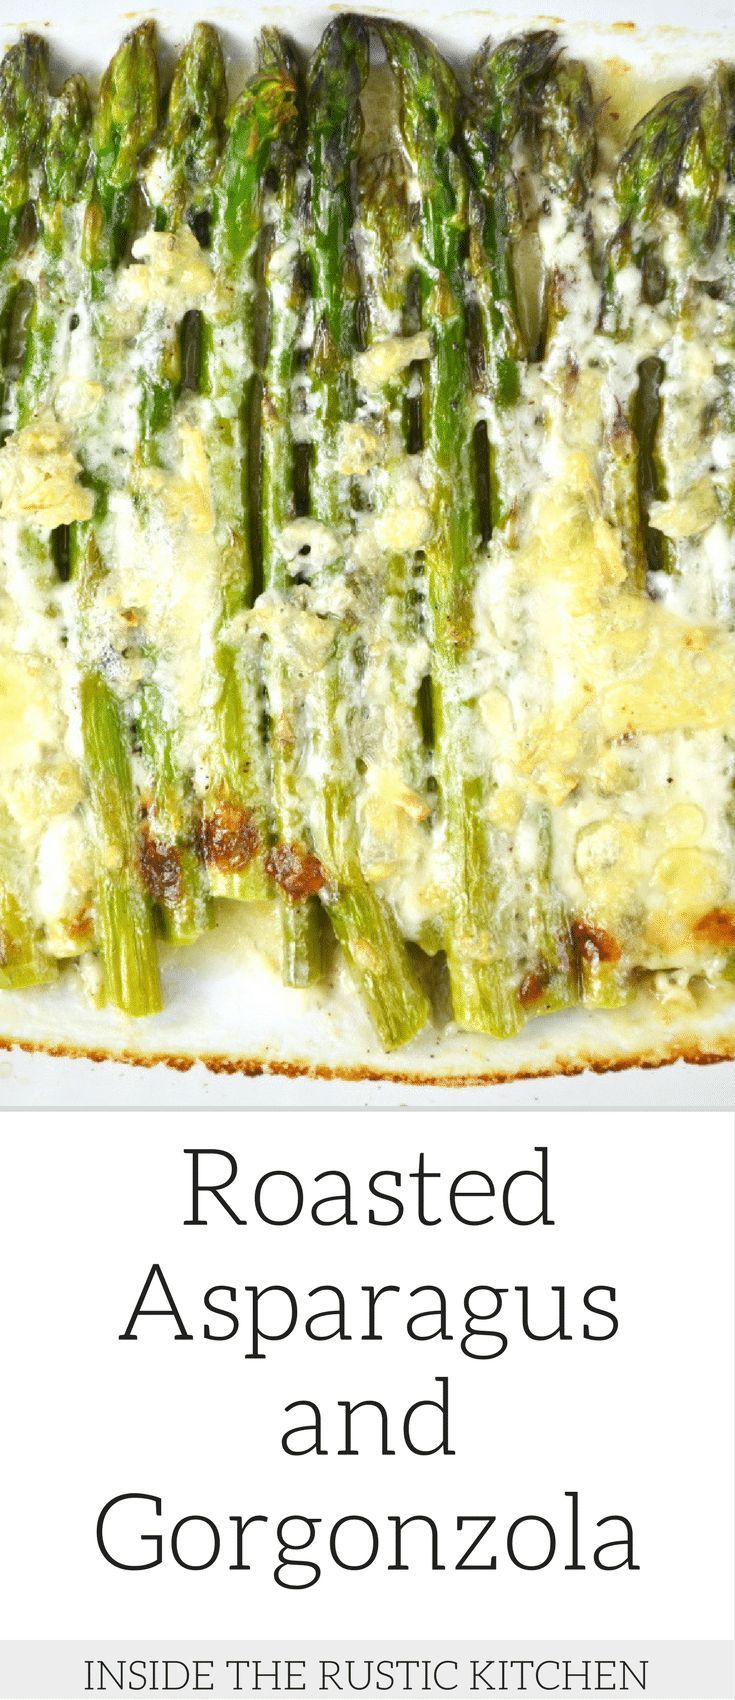 A delicious recipe for roasted asparagus with gorgonzola.It's so simple and is perfect for weeknights or special occasions. Insidetherustickitchen.com